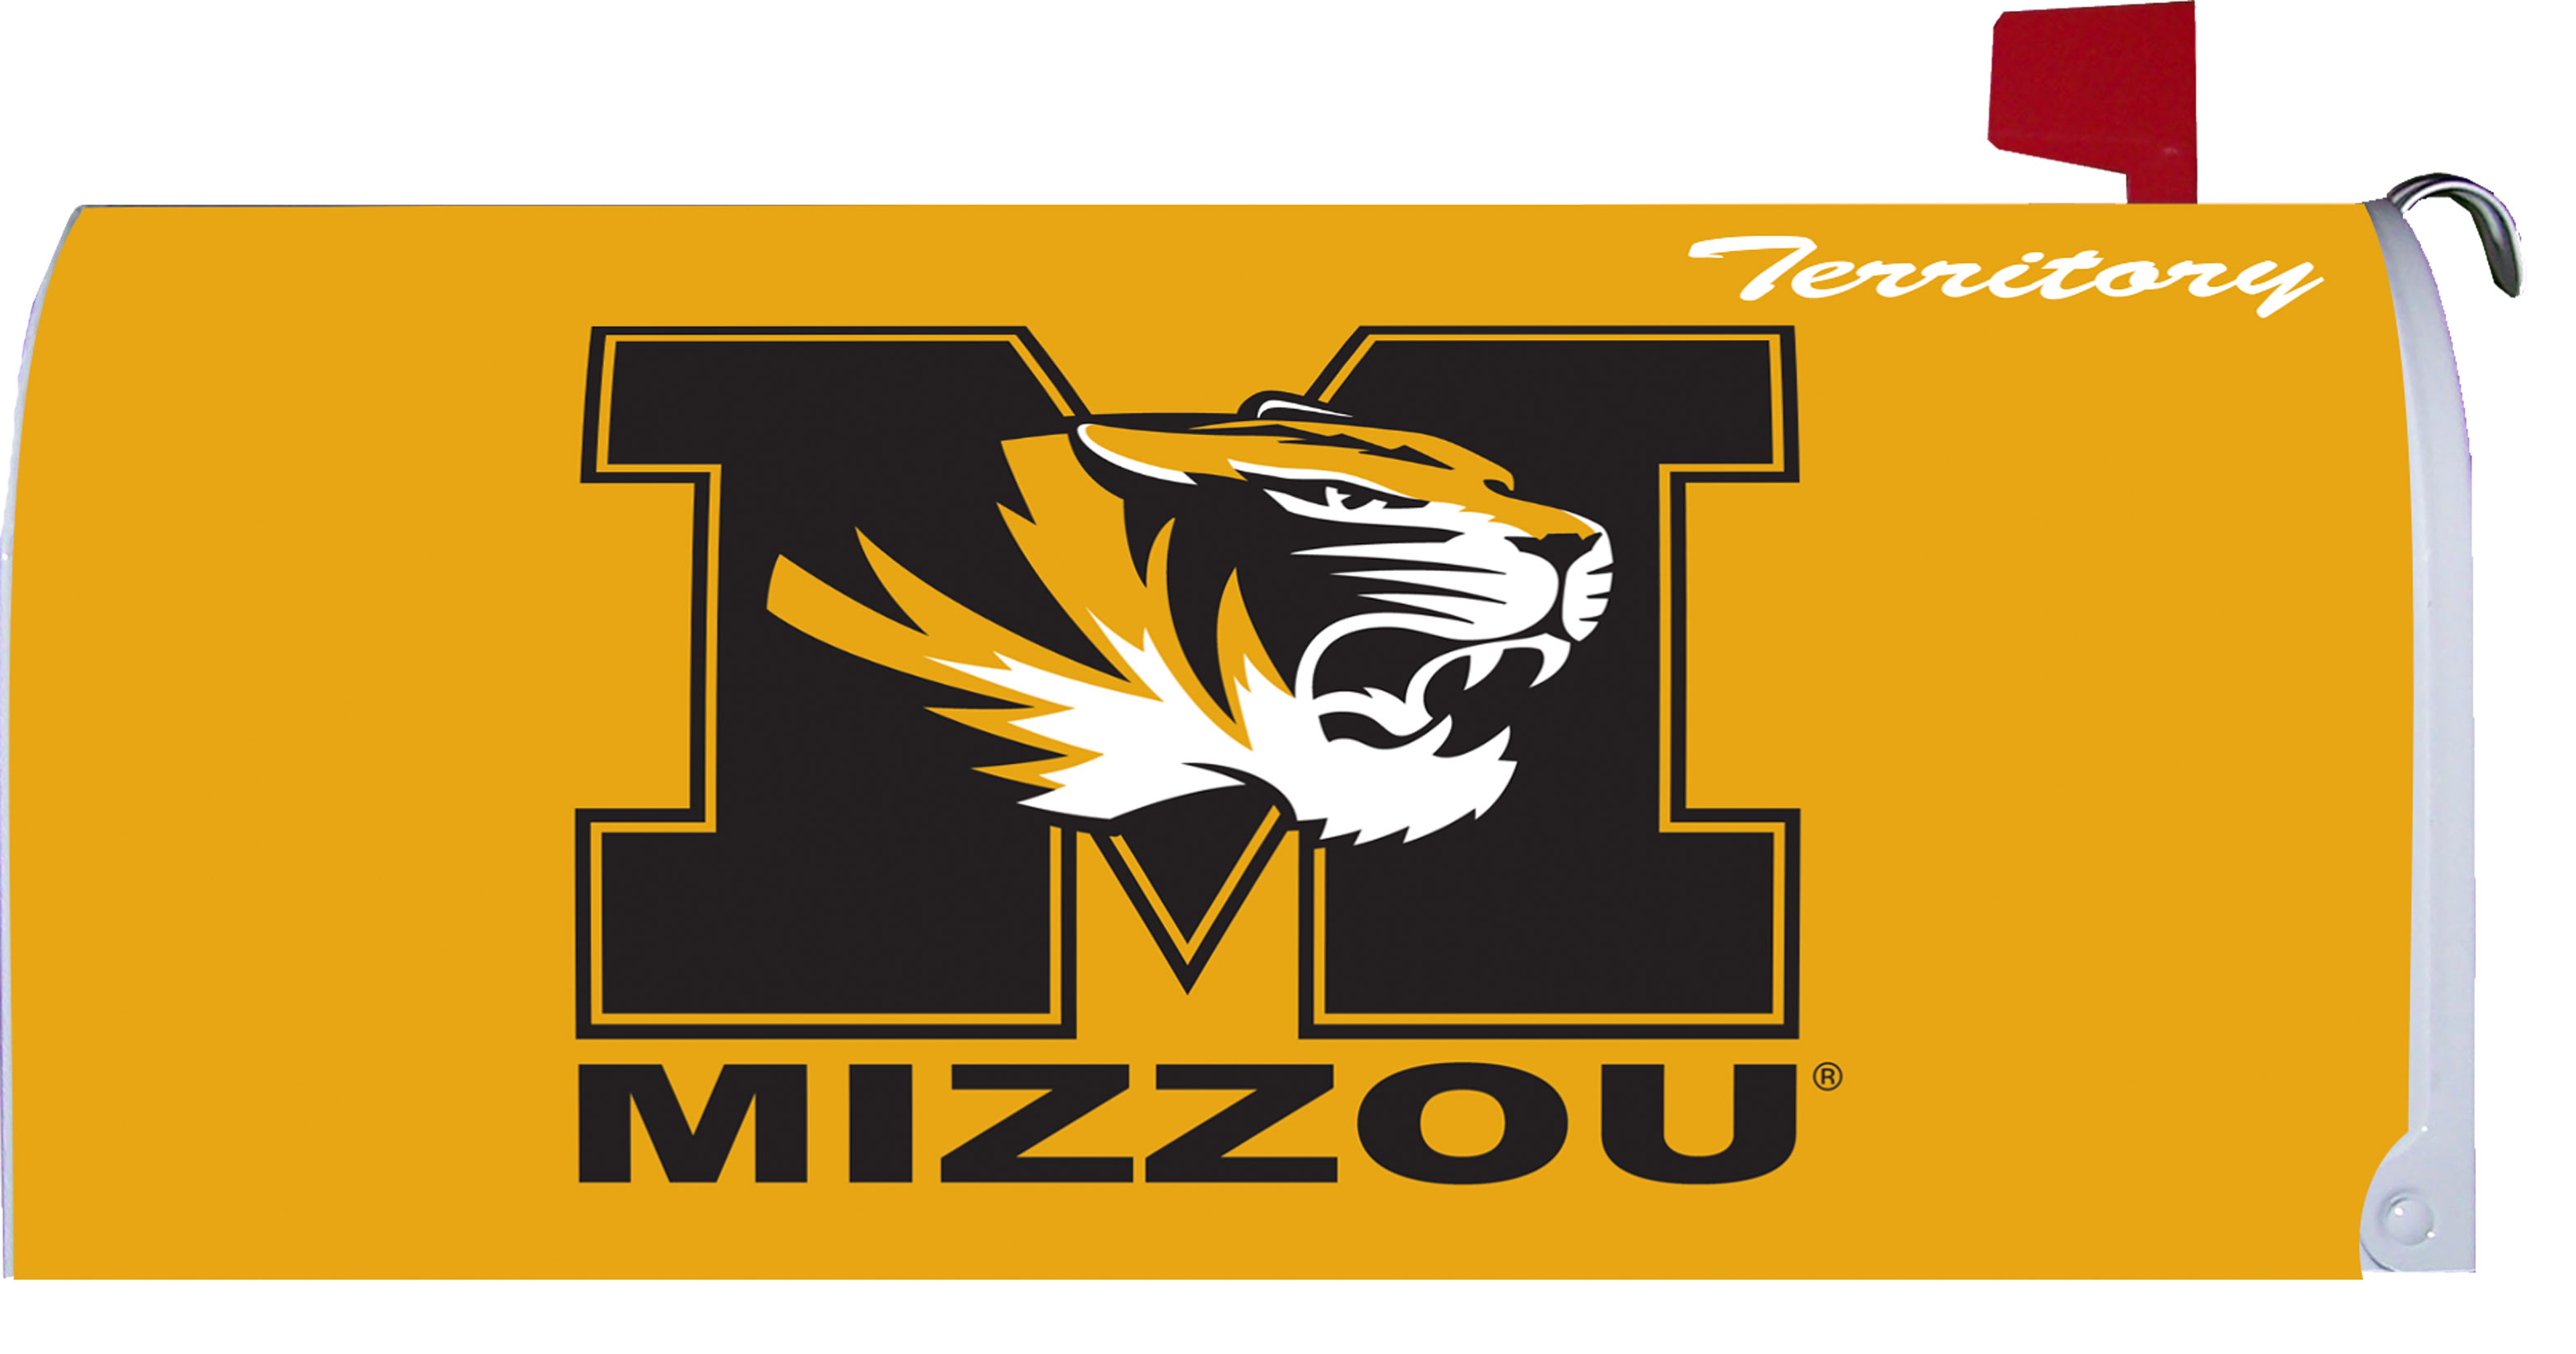 Custom Decor Mailbox Cover Mizzou Territory By Custom Decor College Game Day 18x21 at Sears.com